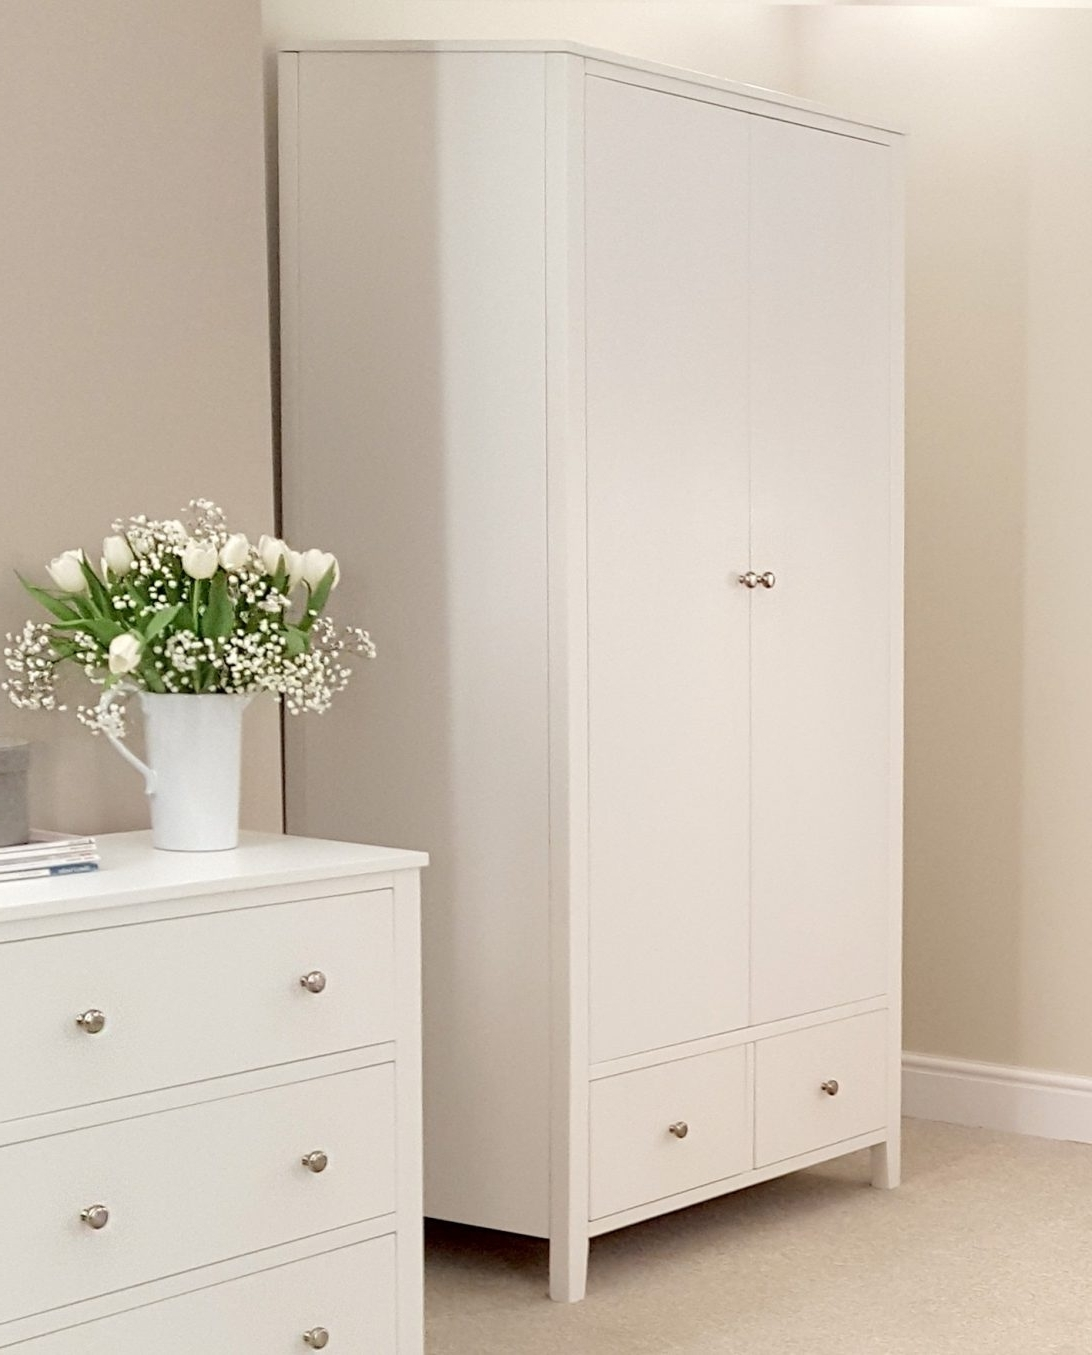 2018 White Double Wardrobe With Drawers 2 Door And Mirror Ikea Large With Large White Wardrobes With Drawers (View 2 of 15)